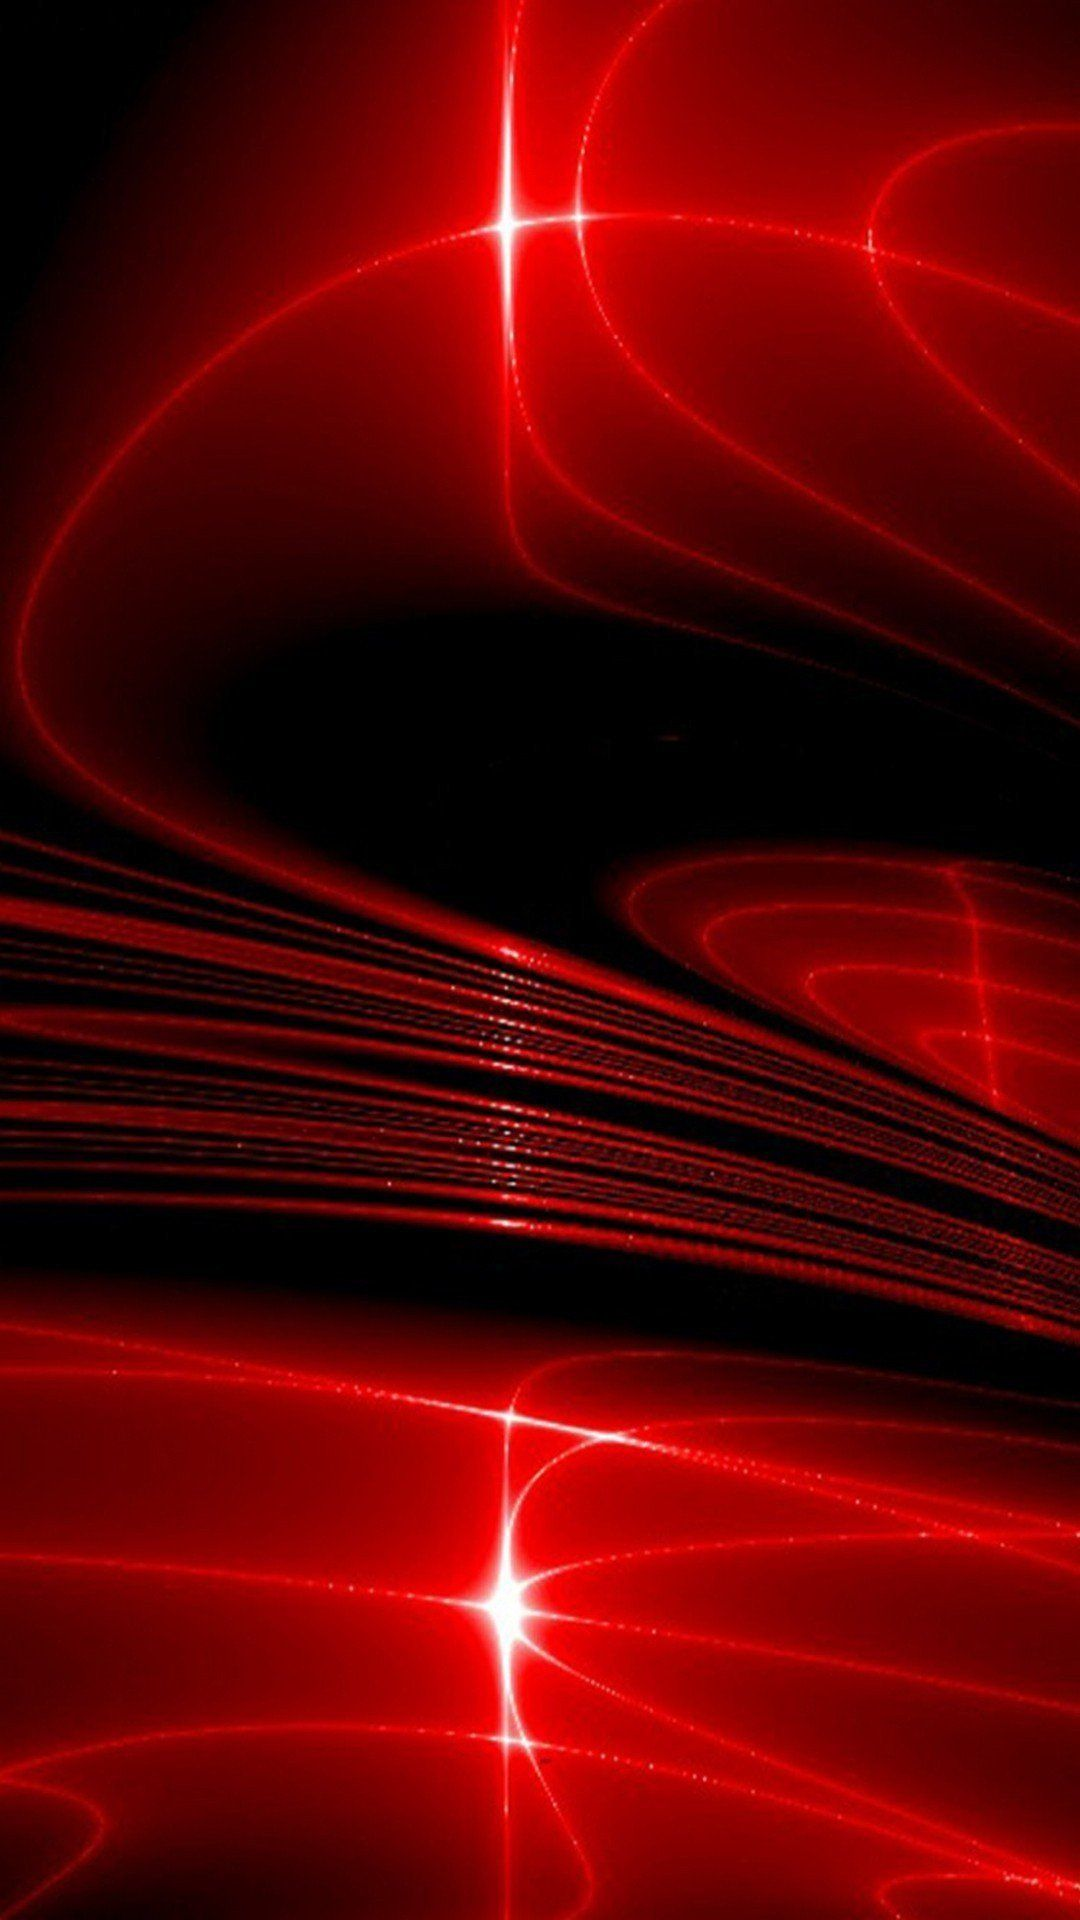 Cool Red Dark Hd Mobile Wallpaper Cool Red Dark Hd Mobile Wallpaper Abstract Download Free Mobile Wallp Hd Cool Wallpapers Mobile Wallpaper Cellphone Wallpaper